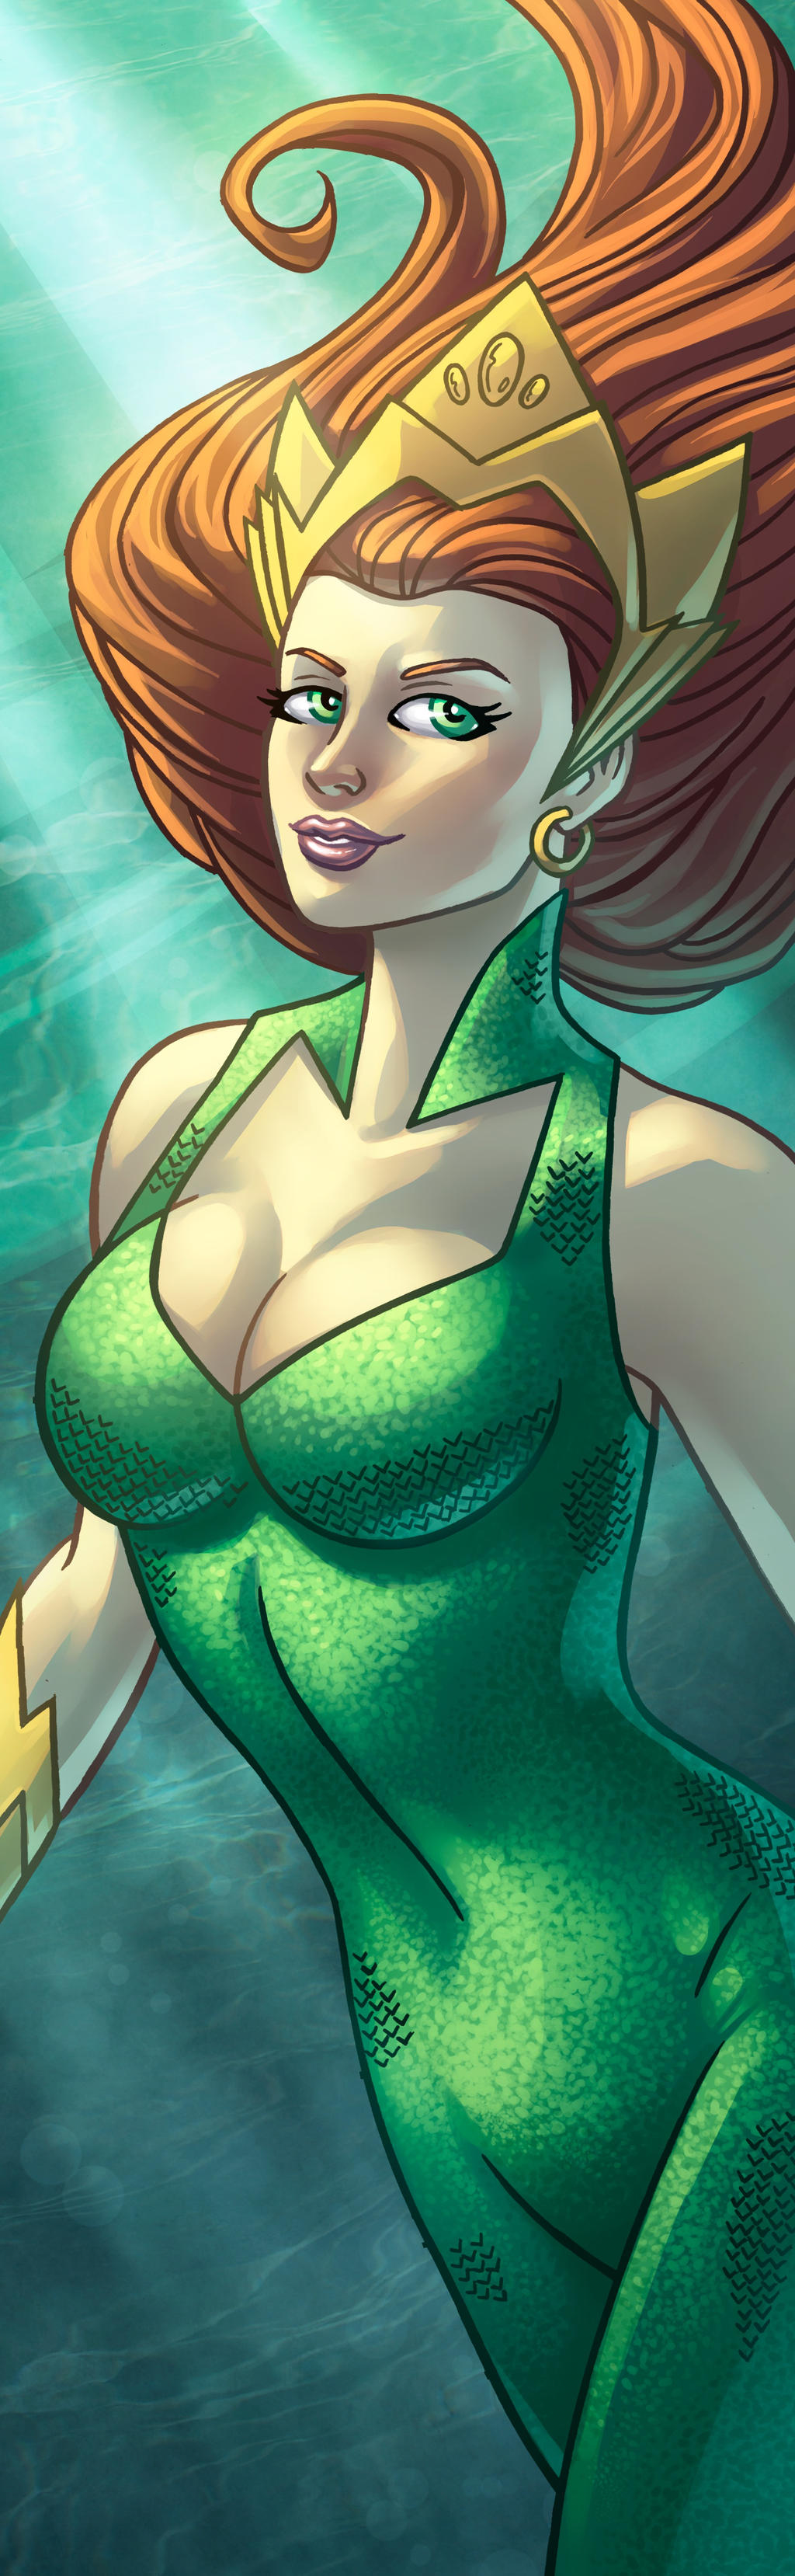 Mera Panel Art by RichBernatovech